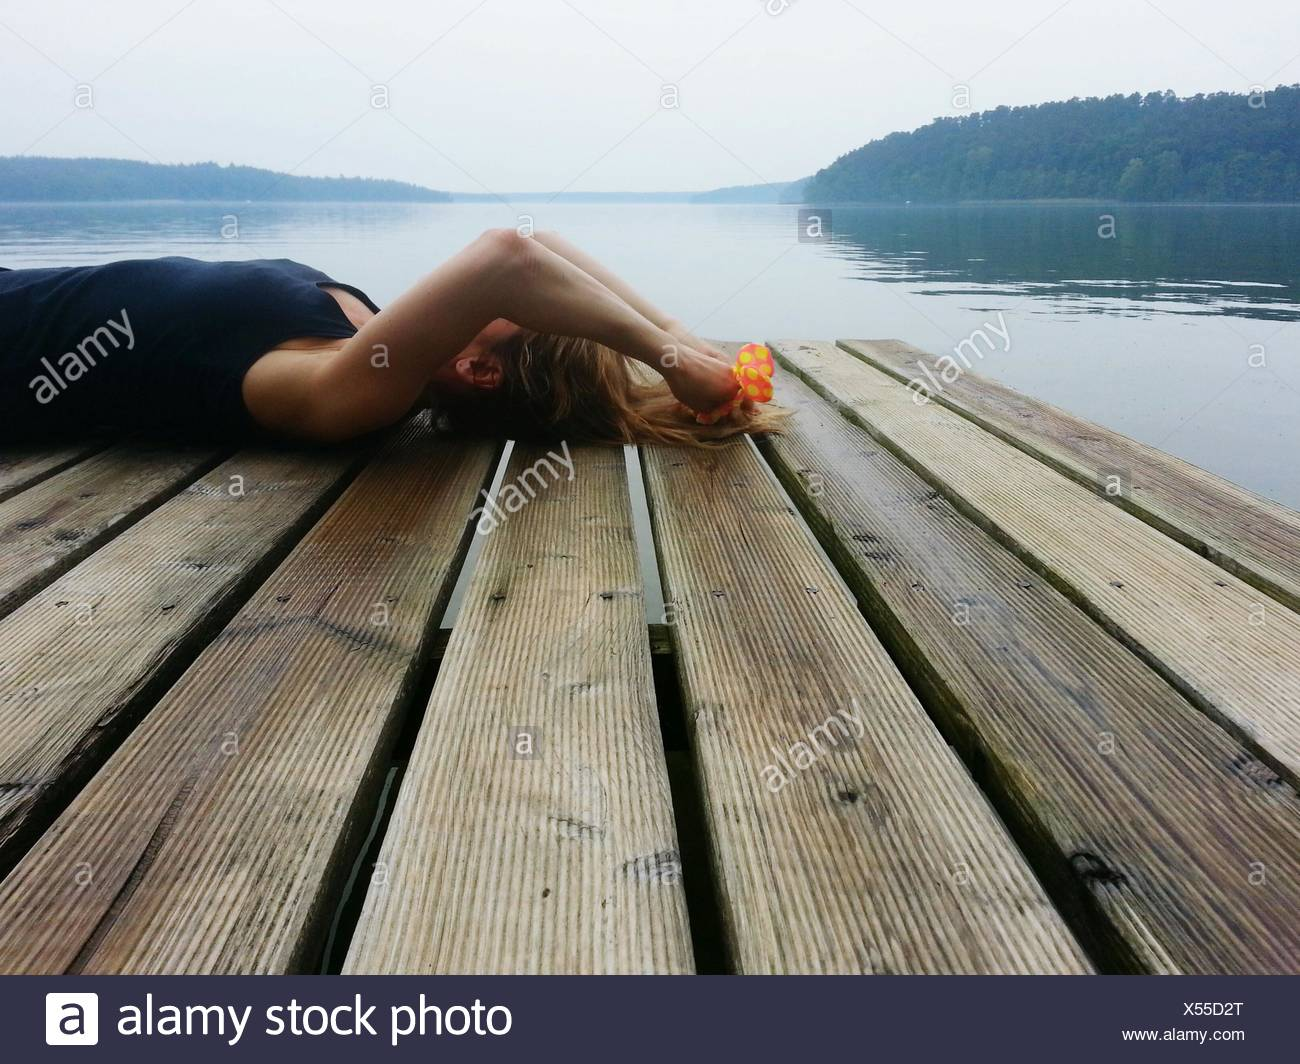 Woman Lying On Wooden Pier In Front Of River Against Sky - Stock Image